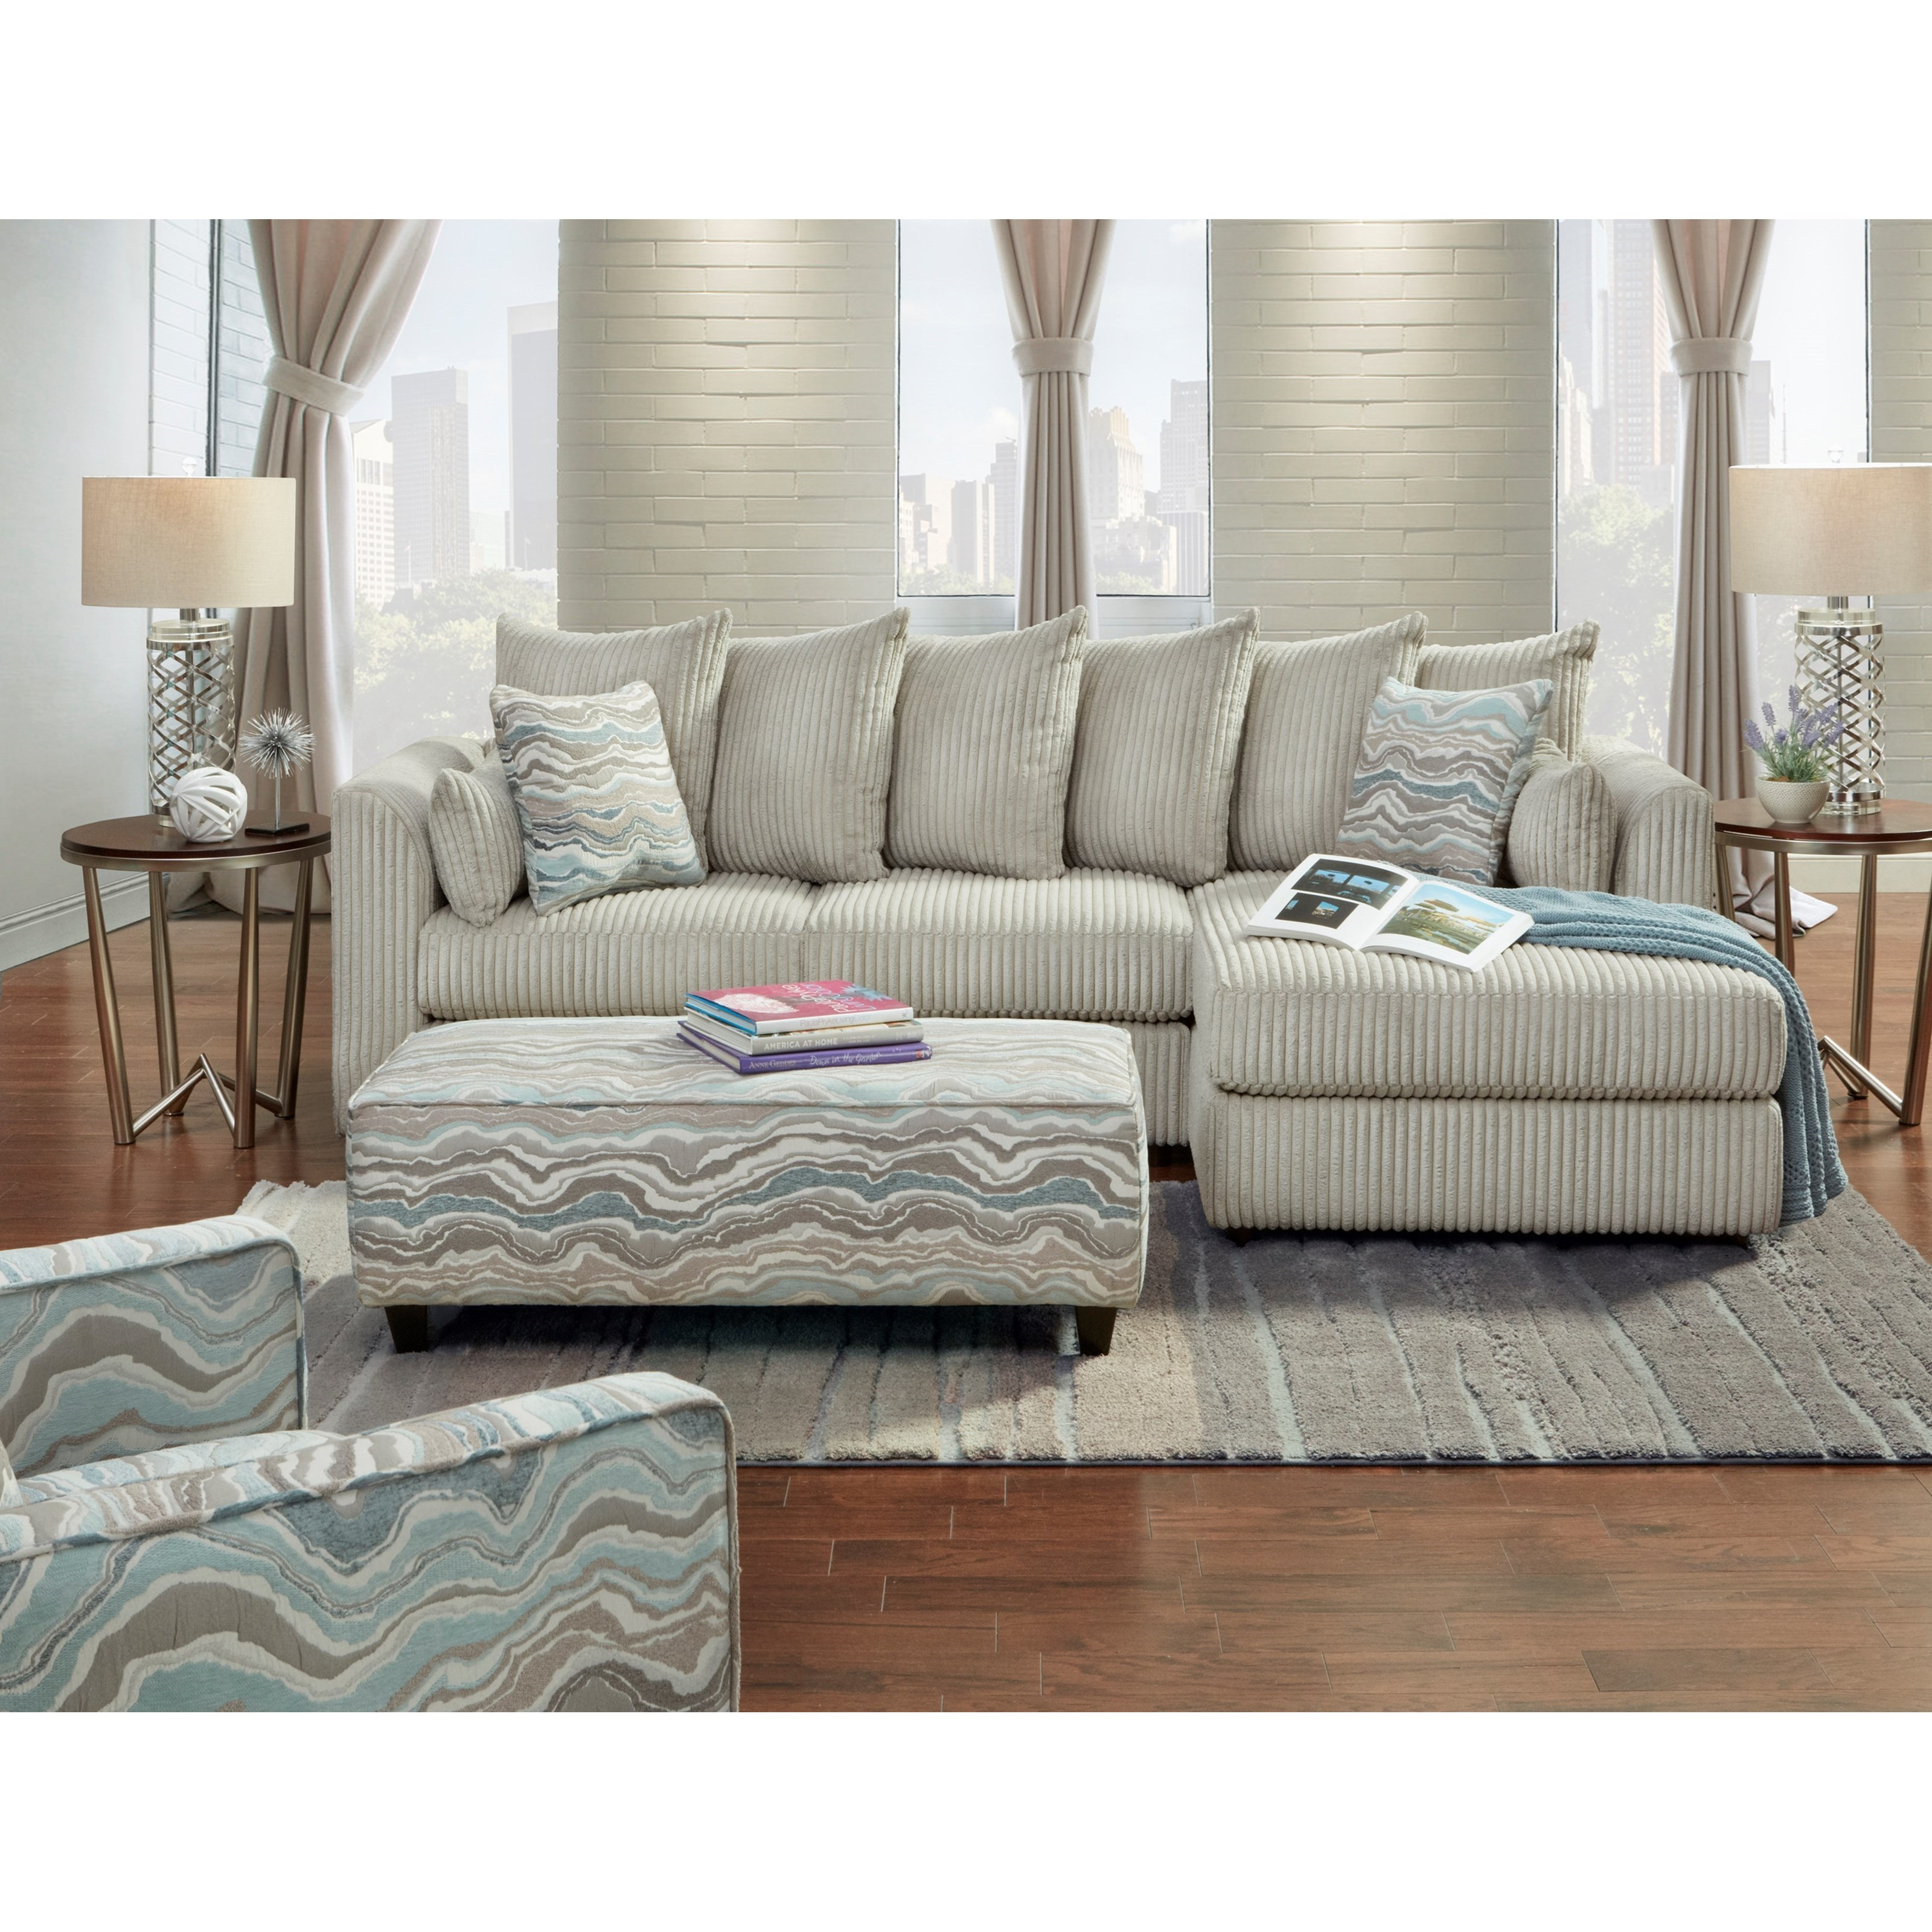 Fusion Furniture 2053 Stationary Living Room Group - Item Number: 2053 Living Room Group 1